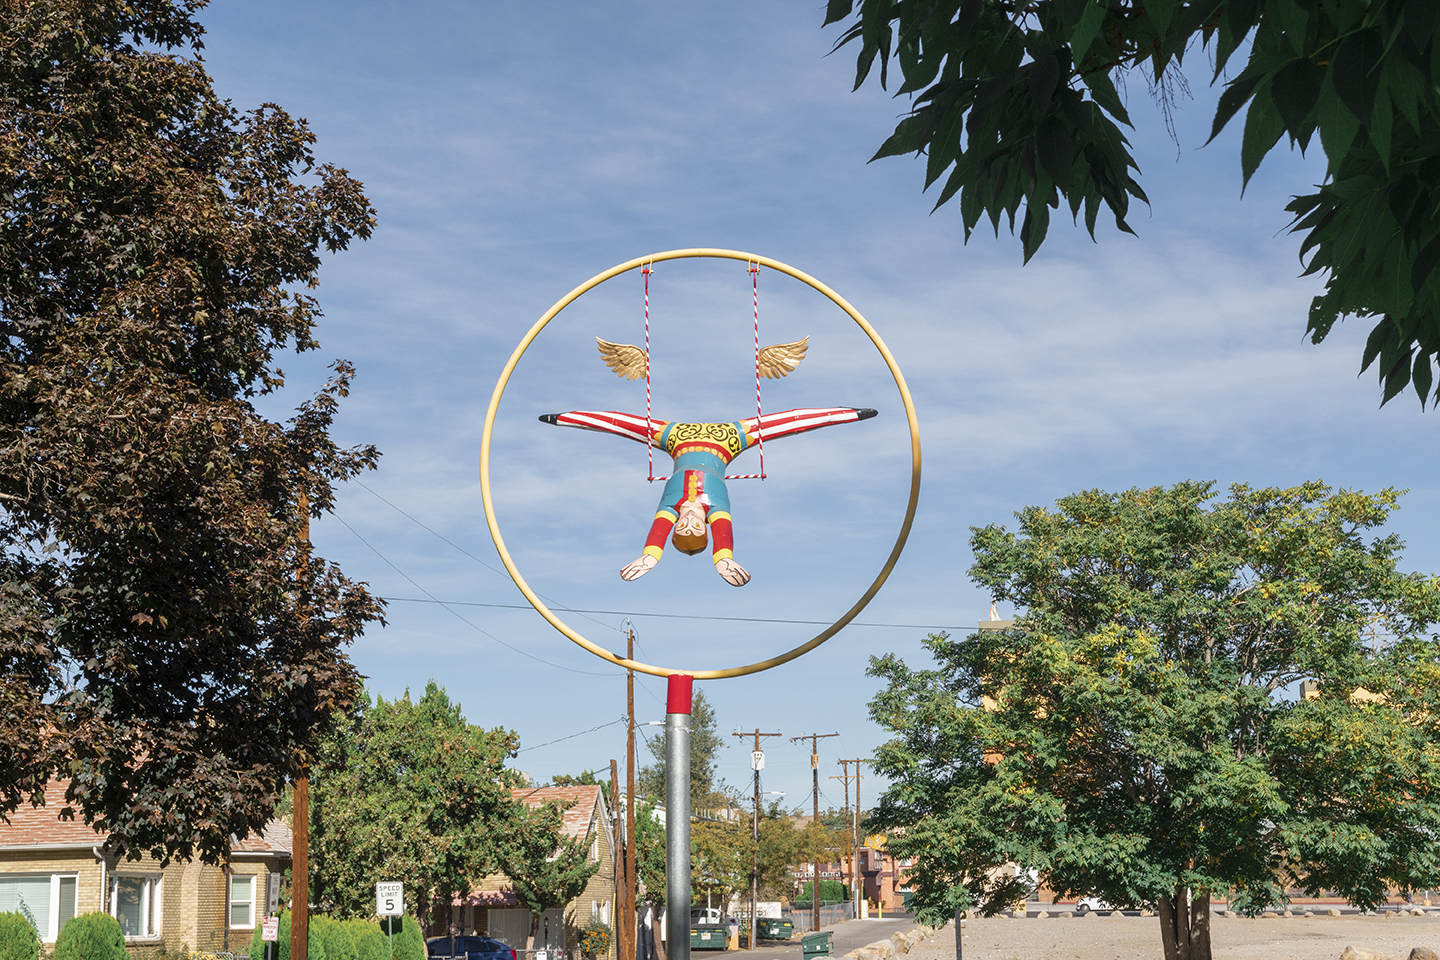 Daring Young Man on the Trapeze by Ric Blackerby, 2019. Image by City of Reno. Photo courtesy of the Public Art Archive.